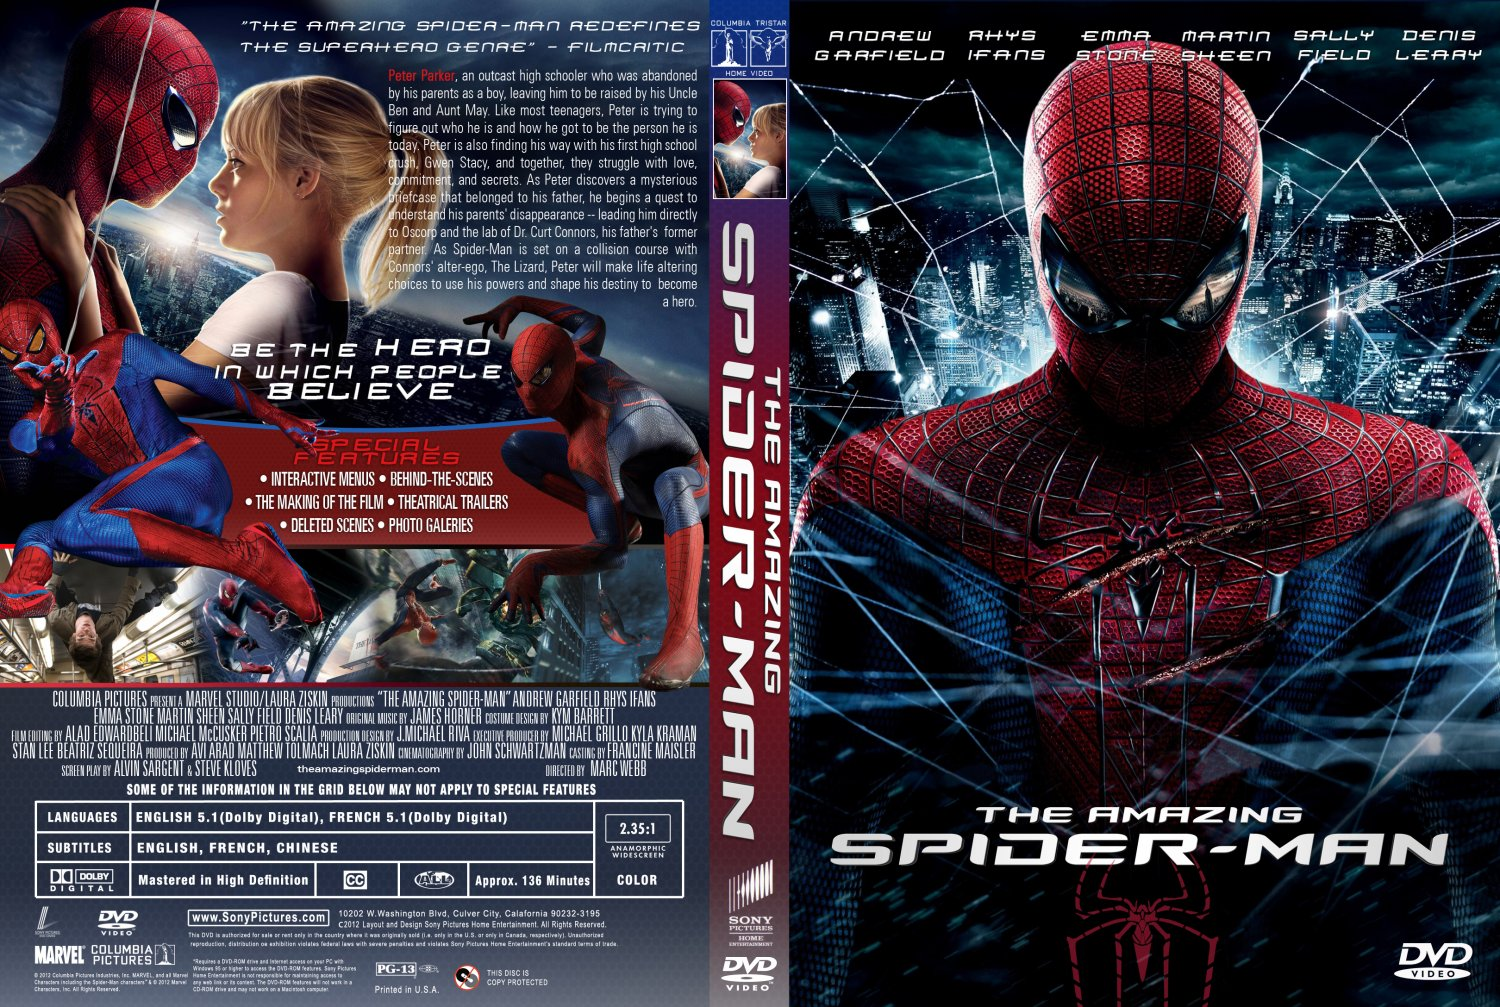 The Amazing Spider-man - Movie DVD Custom Covers